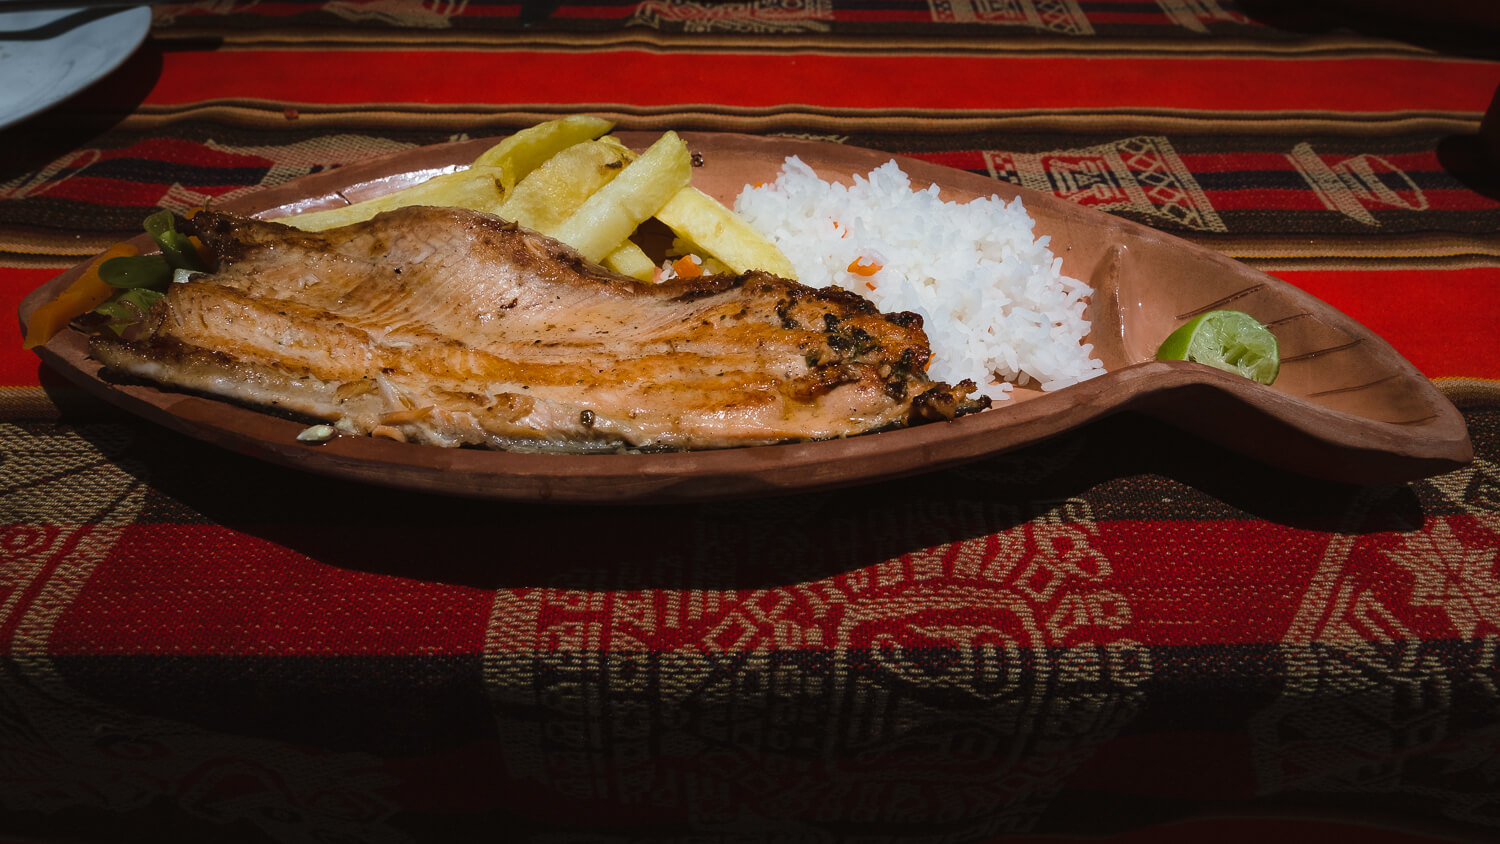 """Trout for lunch, Taquile Island. Travel photography and guide by © Natasha Lequepeys for """"And Then I Met Yoko"""". #peru #laketiticaca #amantani #taquile #homestay #culturalexperience #photoblog #travelblog #travelphotography #fujifilm #travel #travelperu #southamerica #allwaystravel #laketiticacaitinerary #puno #uros #floatingislands #pachamama #pachatata"""